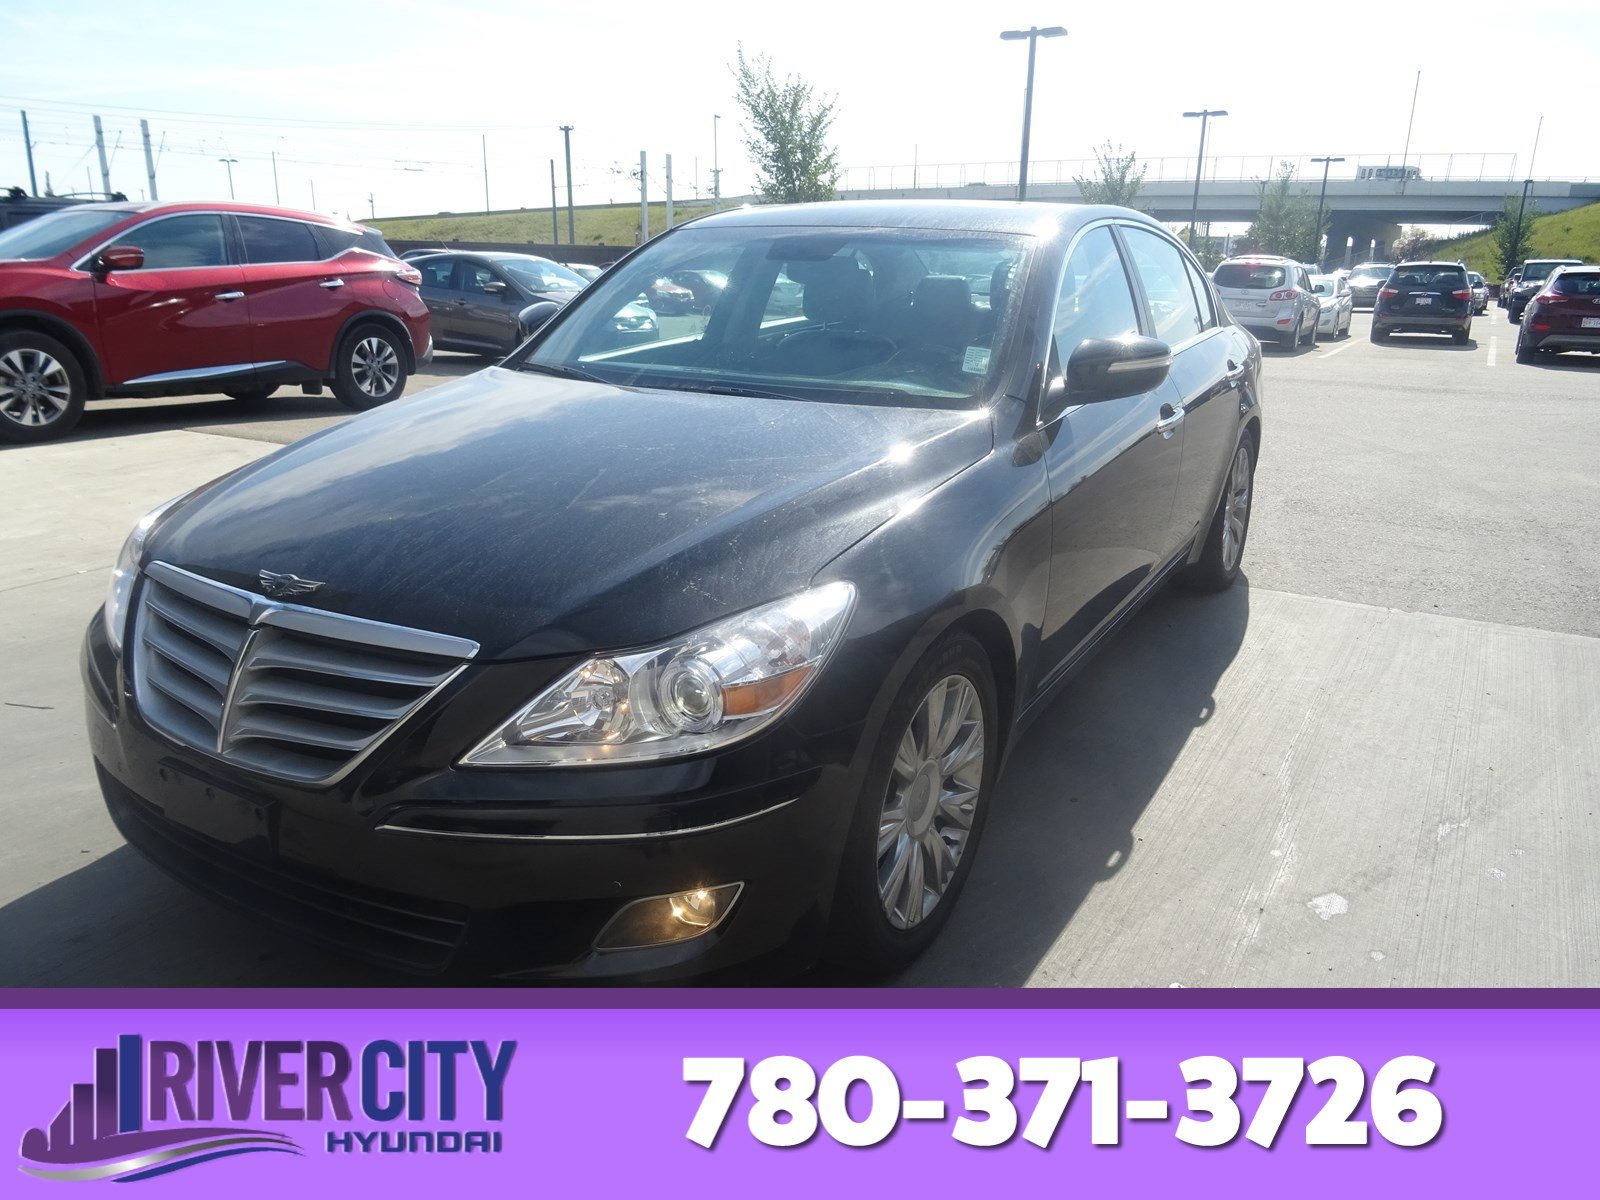 Certified Pre Owned 2011 Hyundai Genesis Sedan PREMIUM WITH TECH Navigation  (GPS), Leather, Heated Seats, Sunroof, Back Up Cam, Bluetooth,